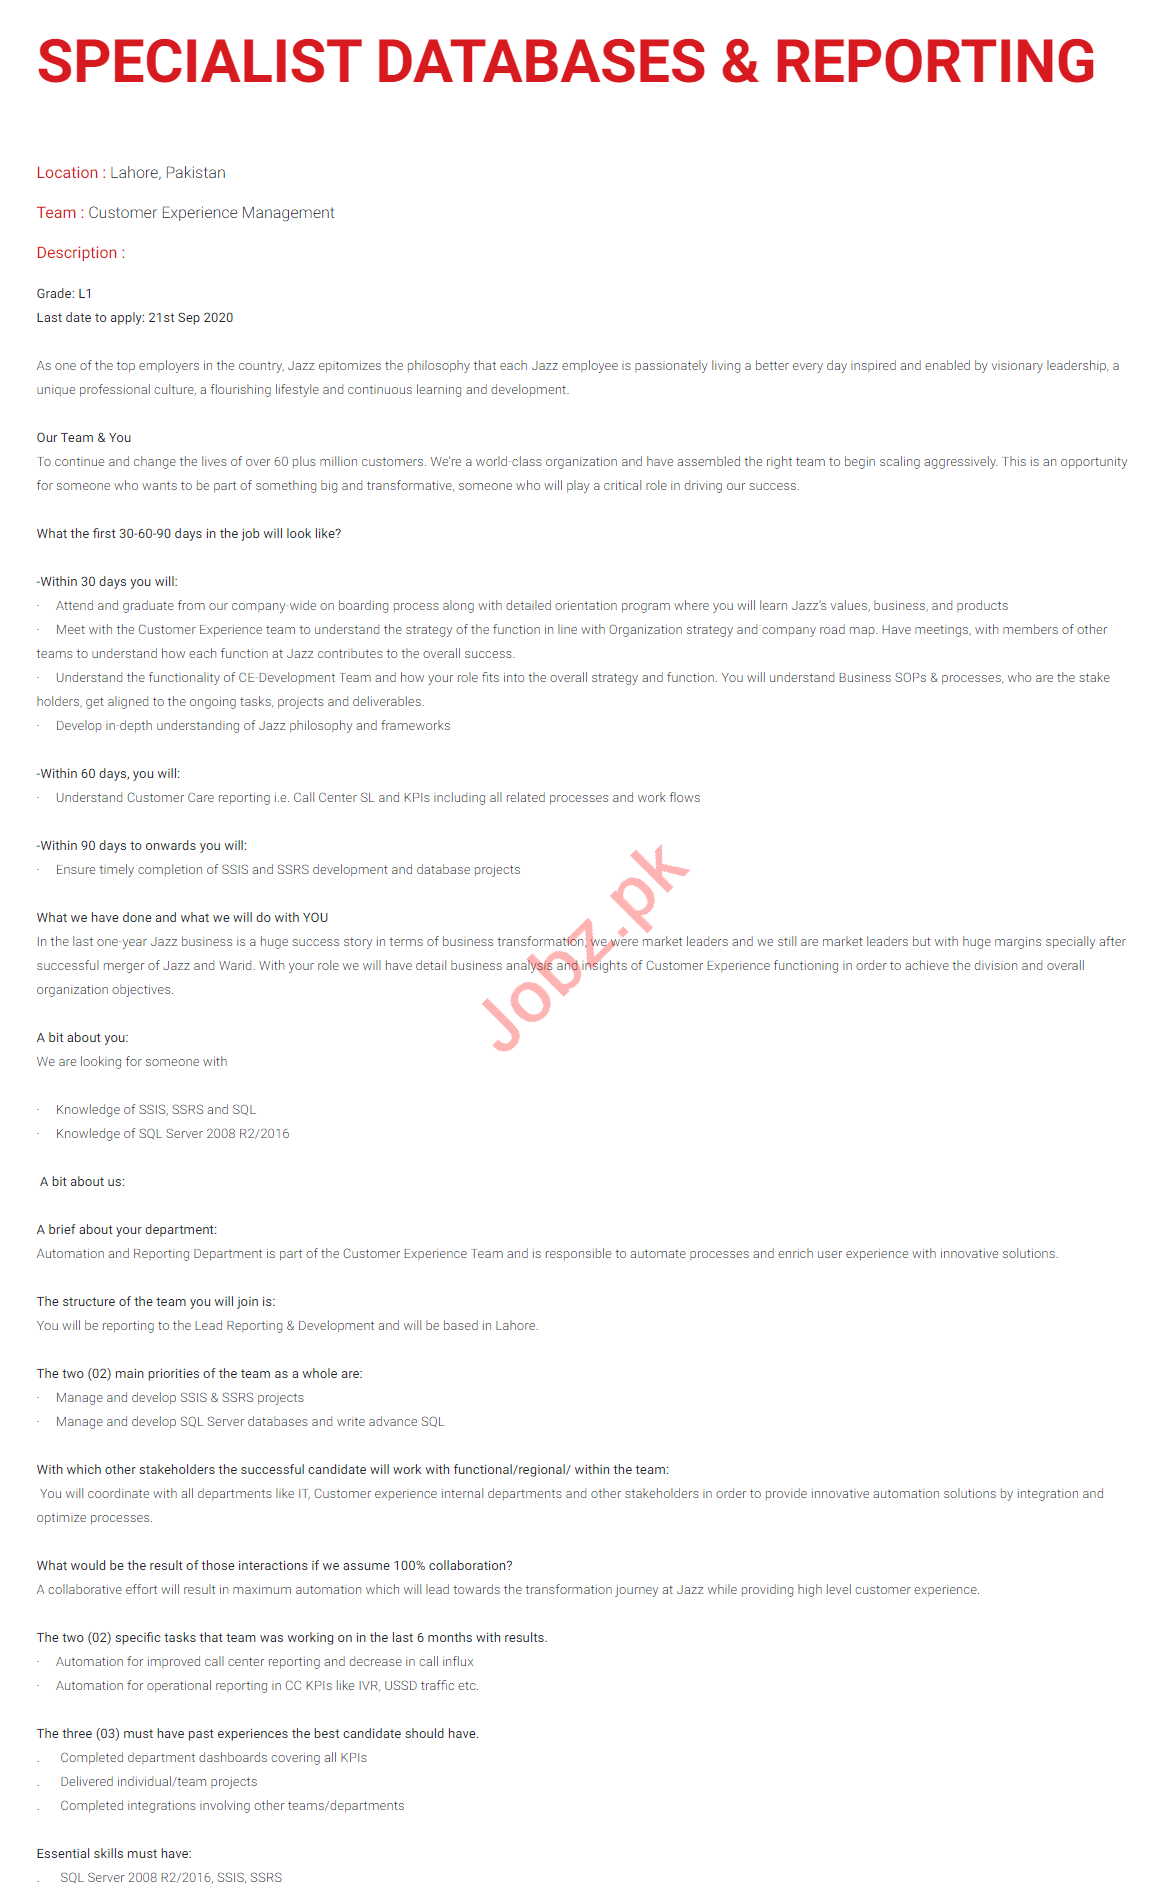 Specialist Database & Reporting Jobs for Jazz Telecom Lahore